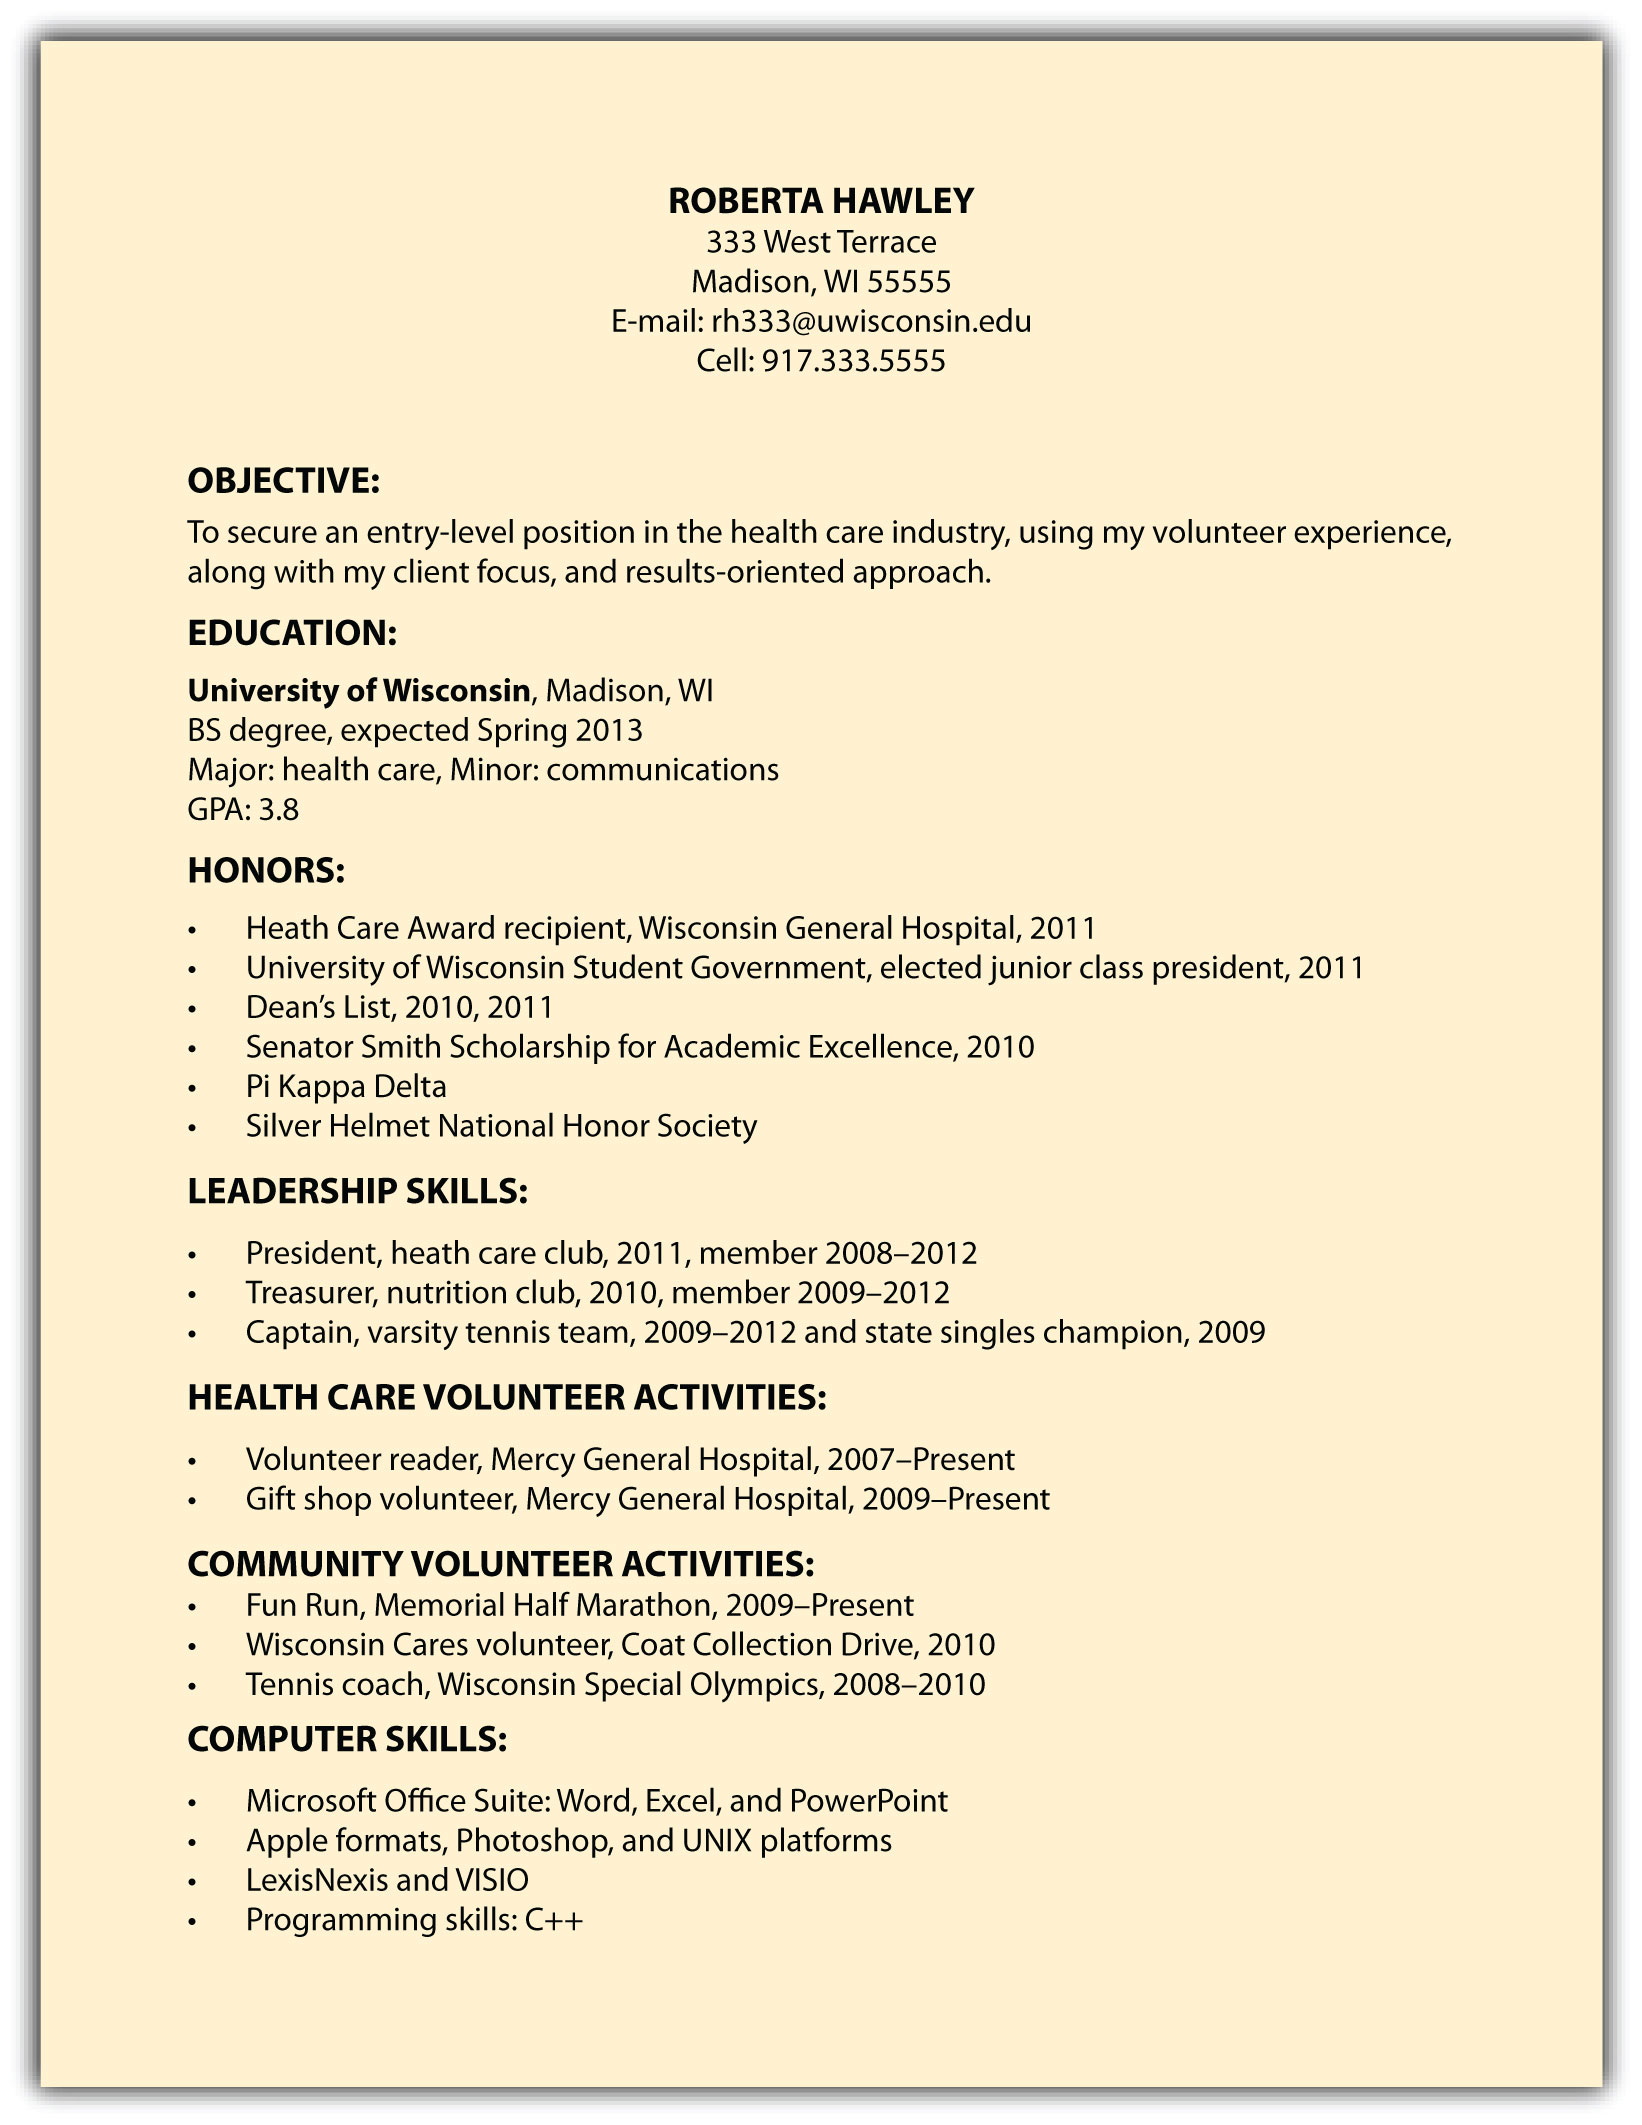 Resume For Babysitter Getessay Biz Job Resume Sample Babysitter Job  Description Resume Babysitter Put Nanny Cna